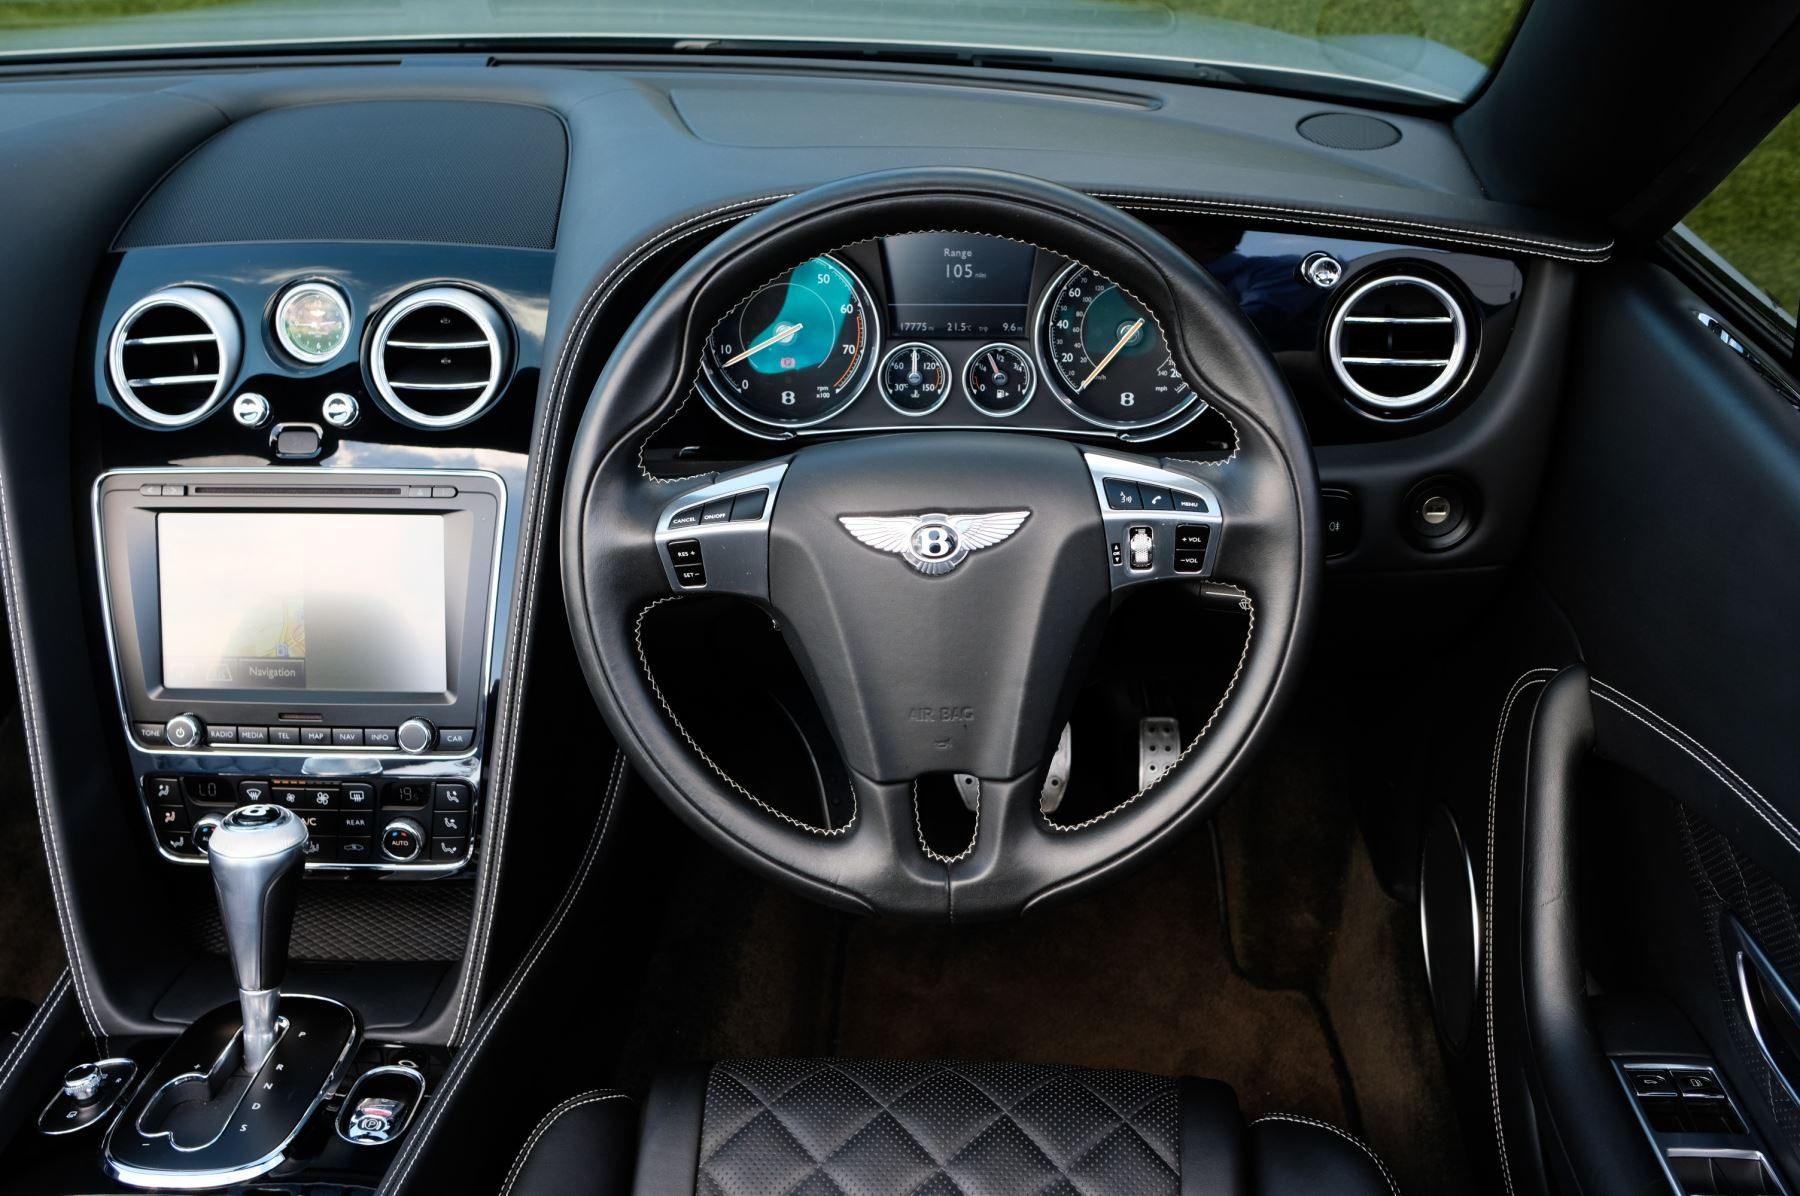 Bentley Continental GTC 4.0 V8 S Mulliner Driving Spec - Ventilated Front Seats with Massage Function image 13